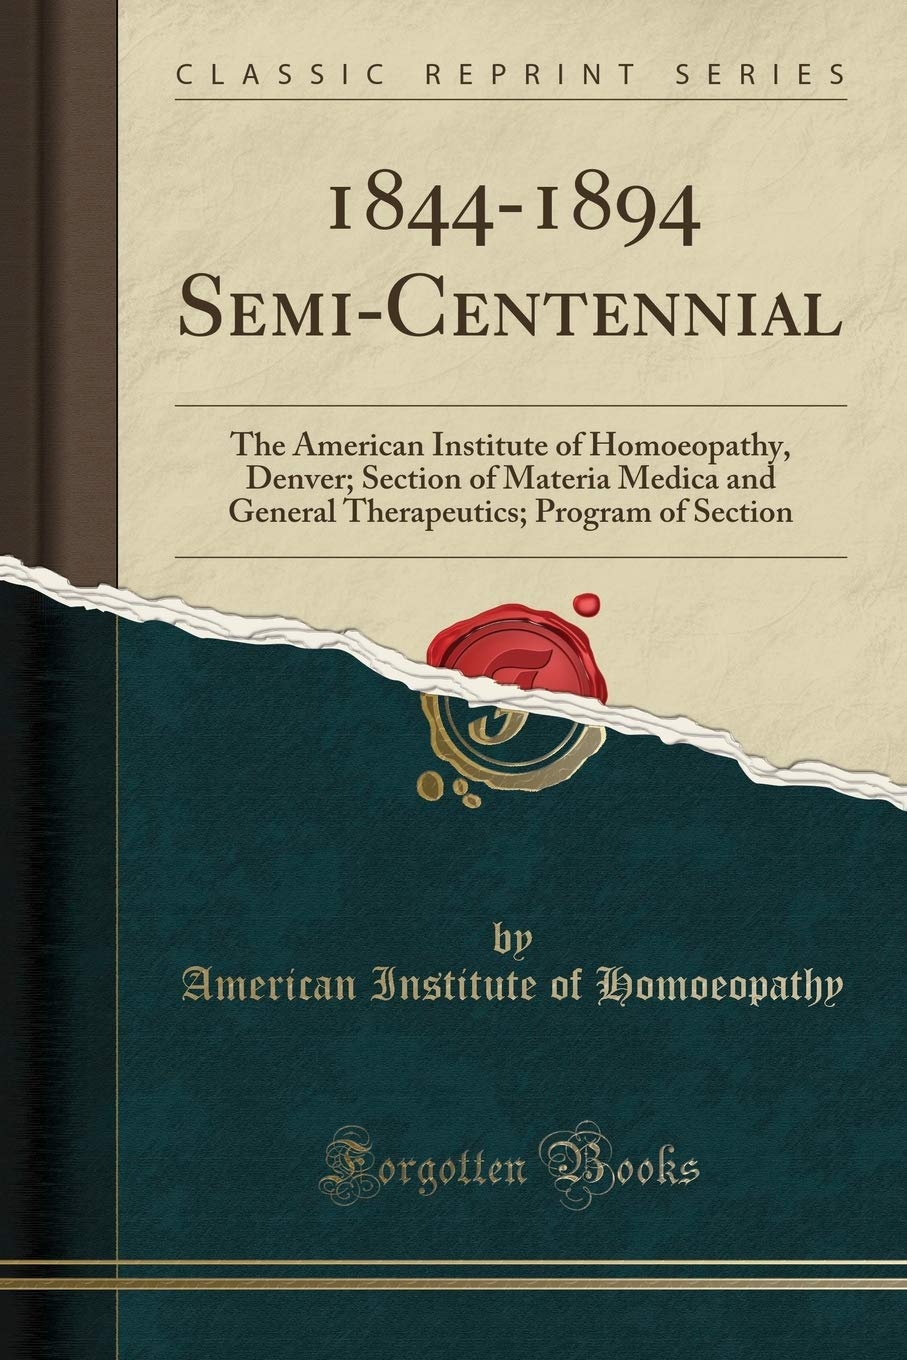 Download 1844-1894 Semi-Centennial: The American Institute of Homoeopathy, Denver; Section of Materia Medica and General Therapeutics; Program of Section (Classic Reprint) PDF